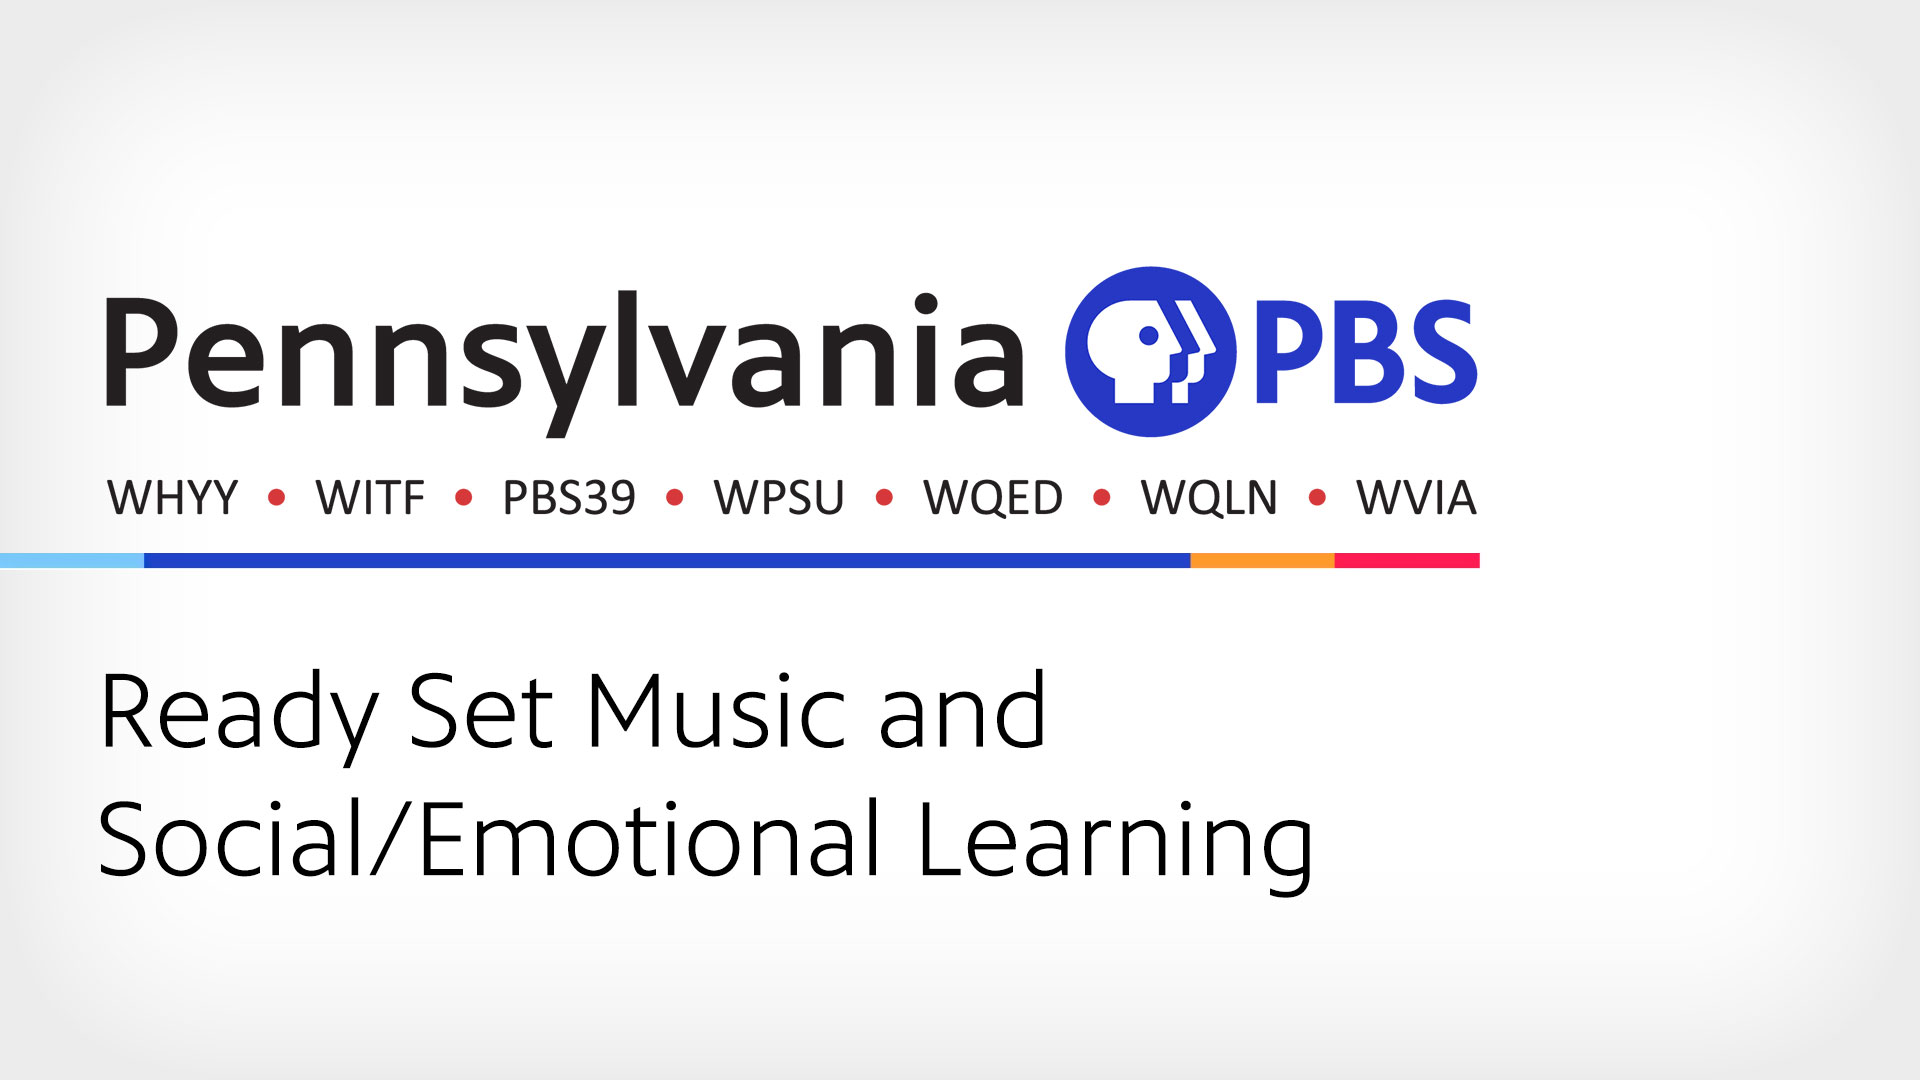 Ready Set Music and Social/Emotional Learning